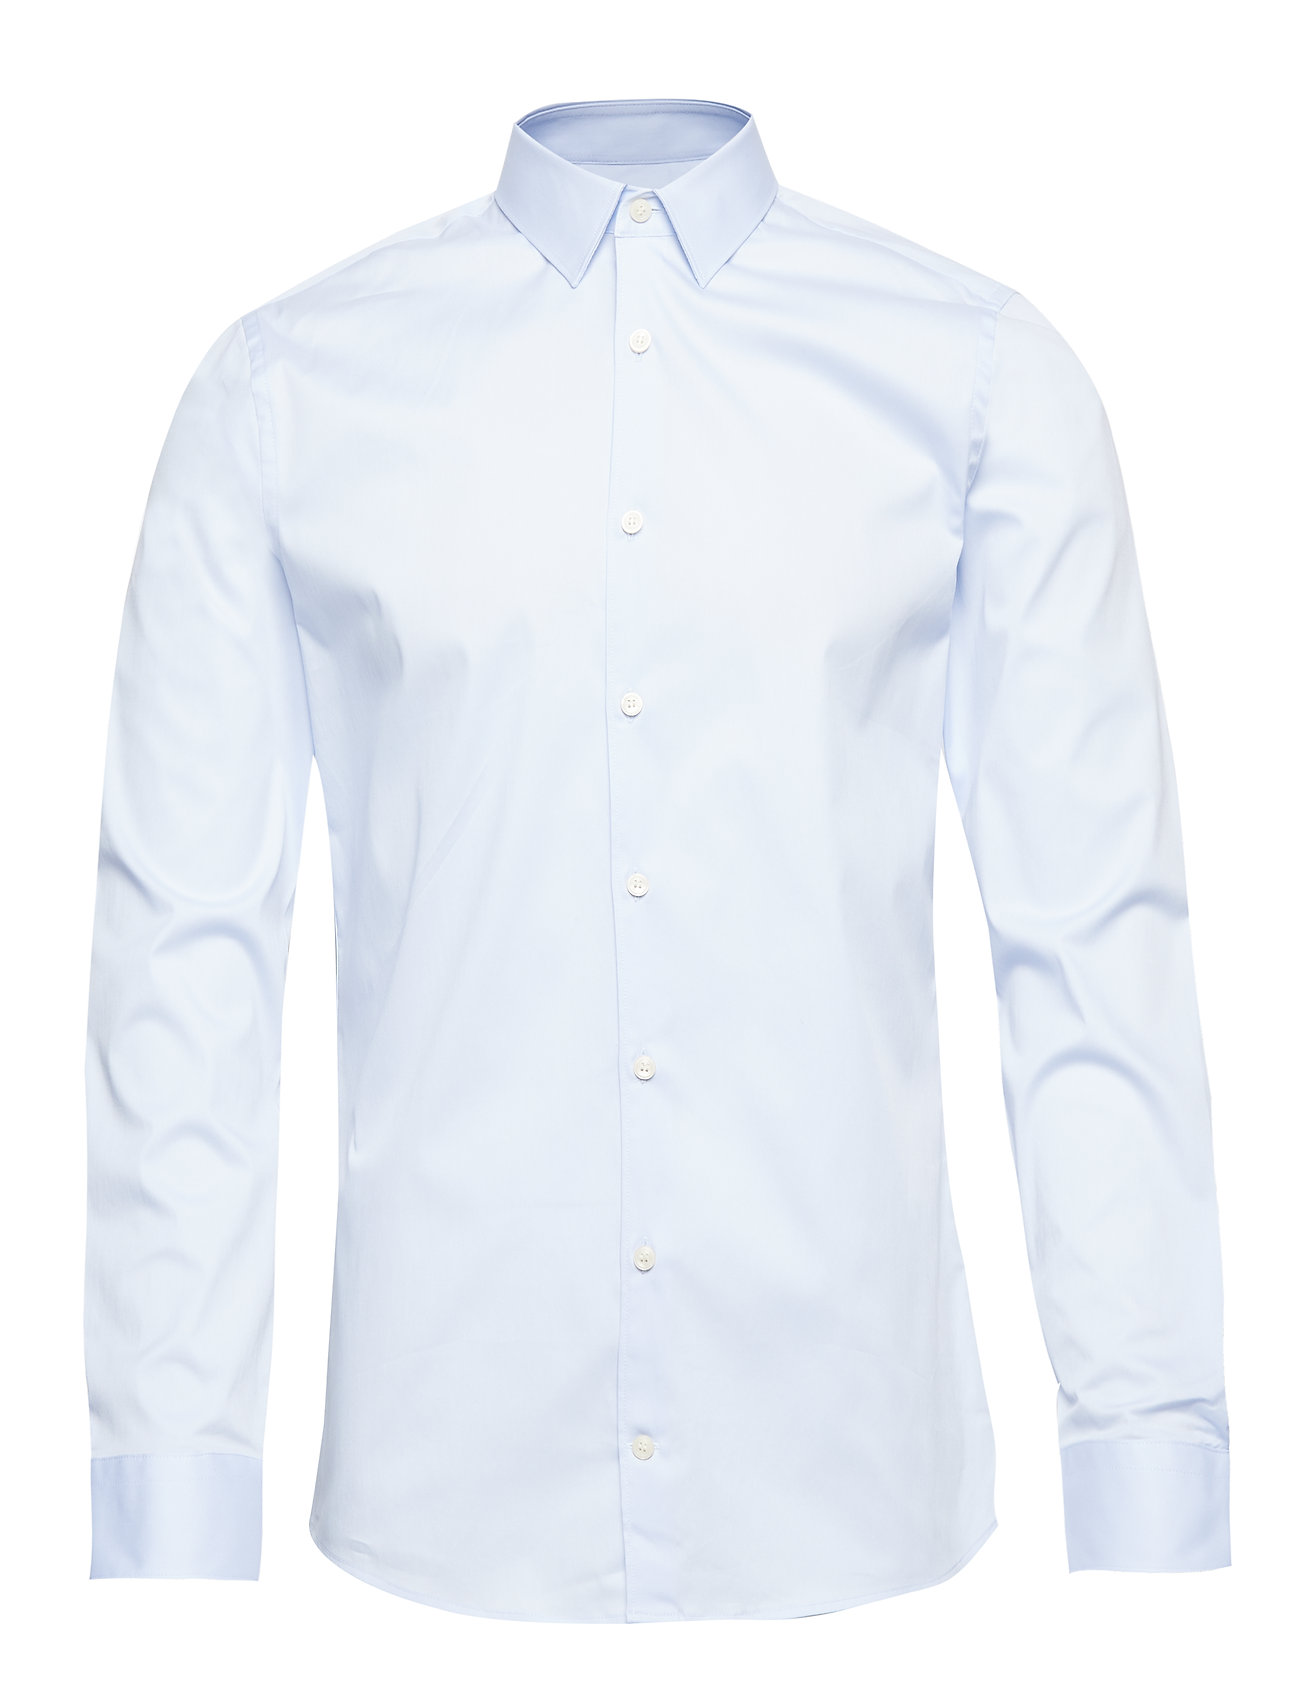 Tiger of Sweden FILBRODIE - PALE BLUE